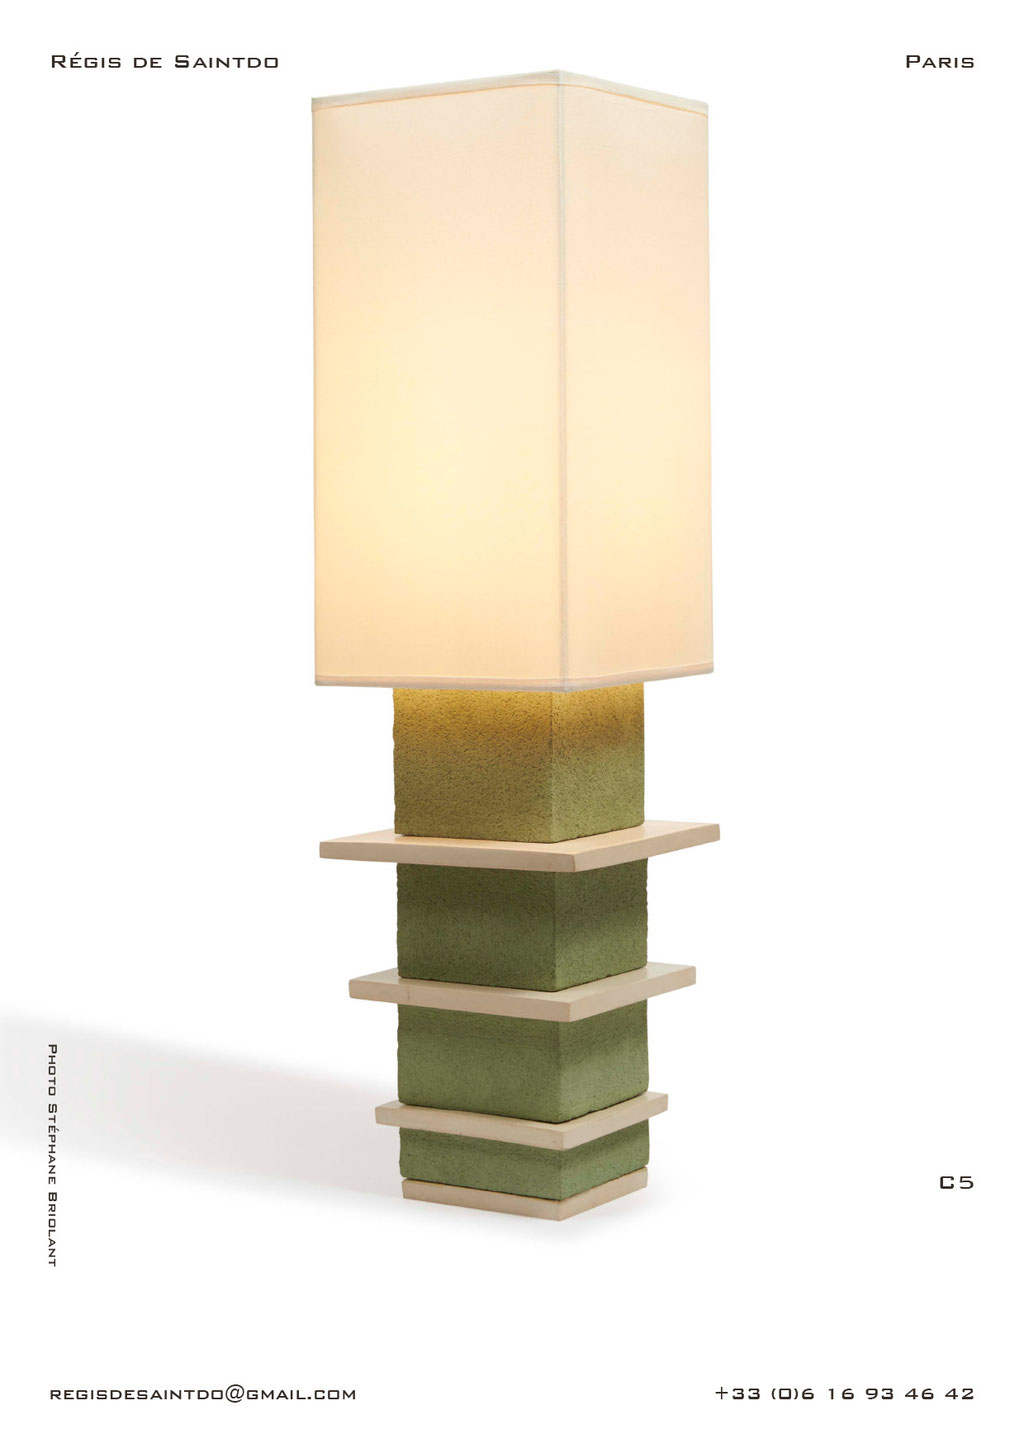 Lamp-C5-green-rough-white-polished-handmade-unique